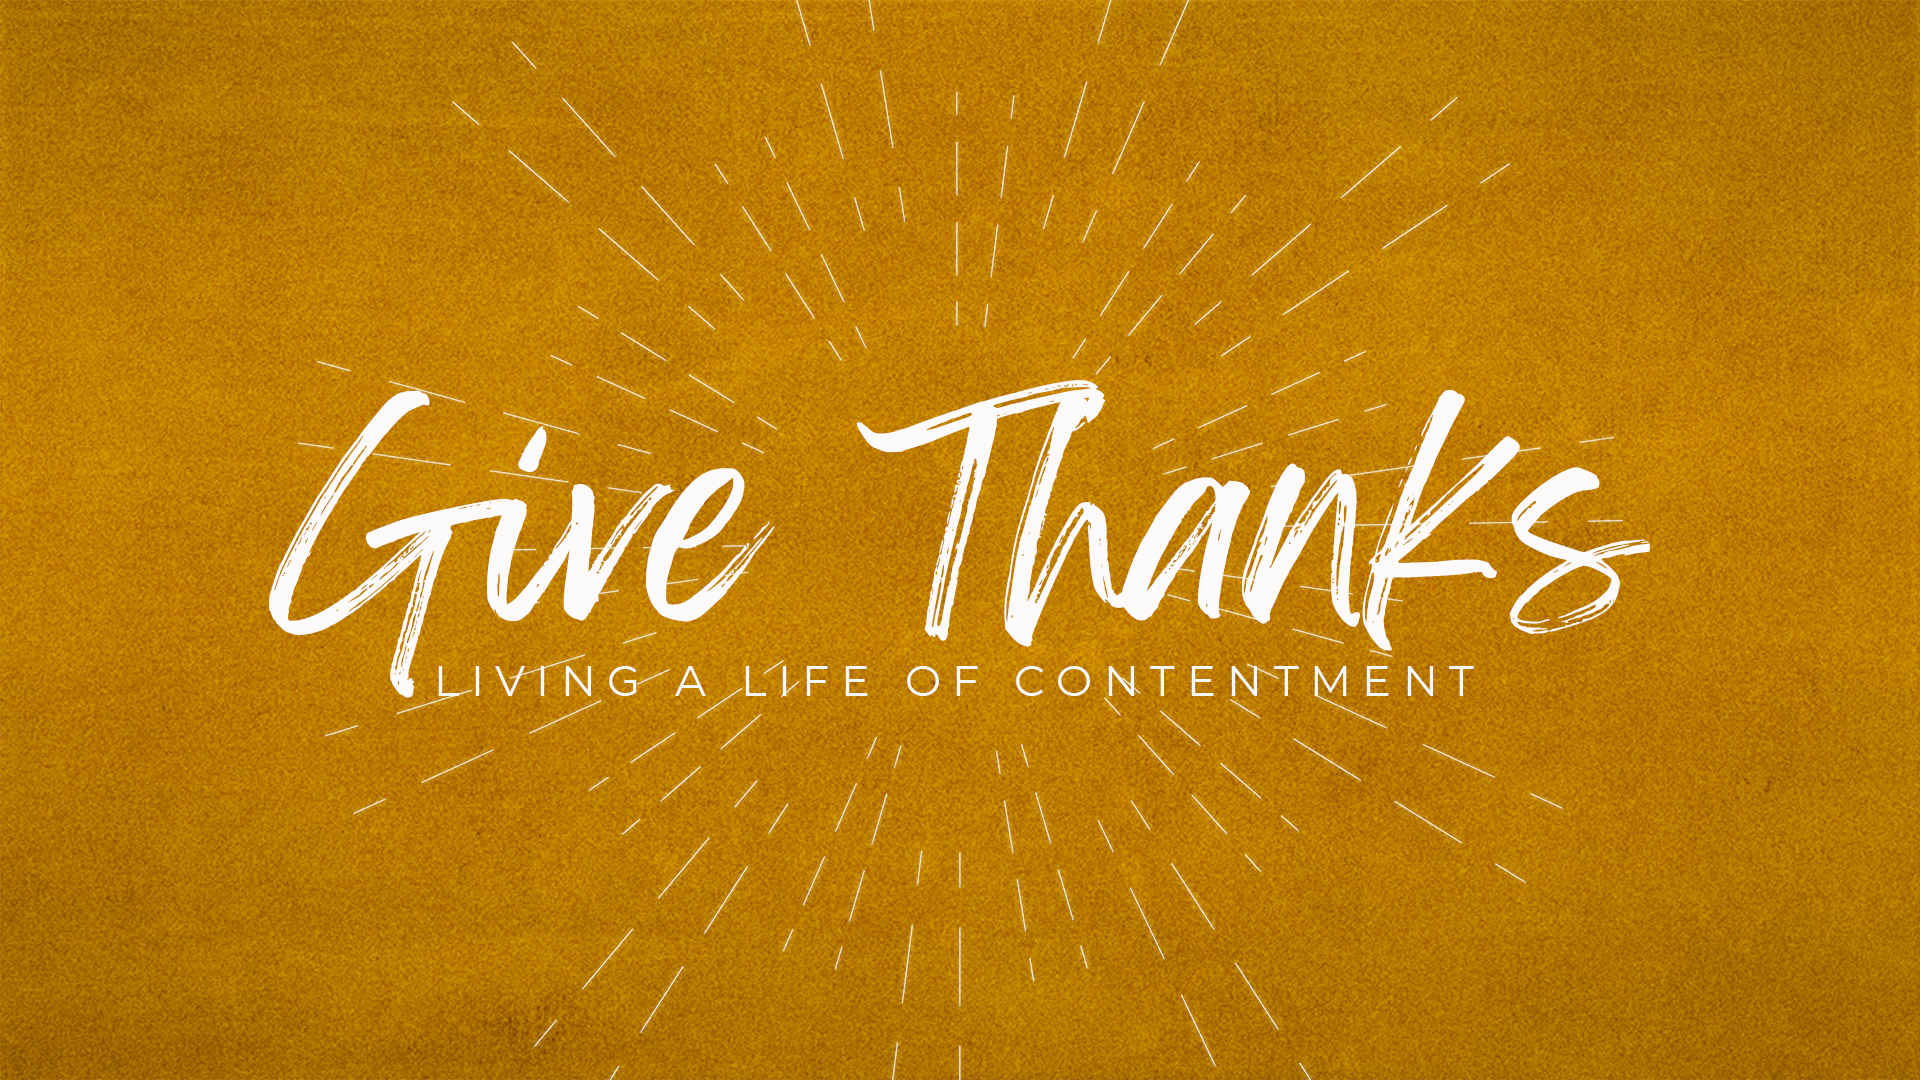 Giving Thanks: Living A Life Of Contentment